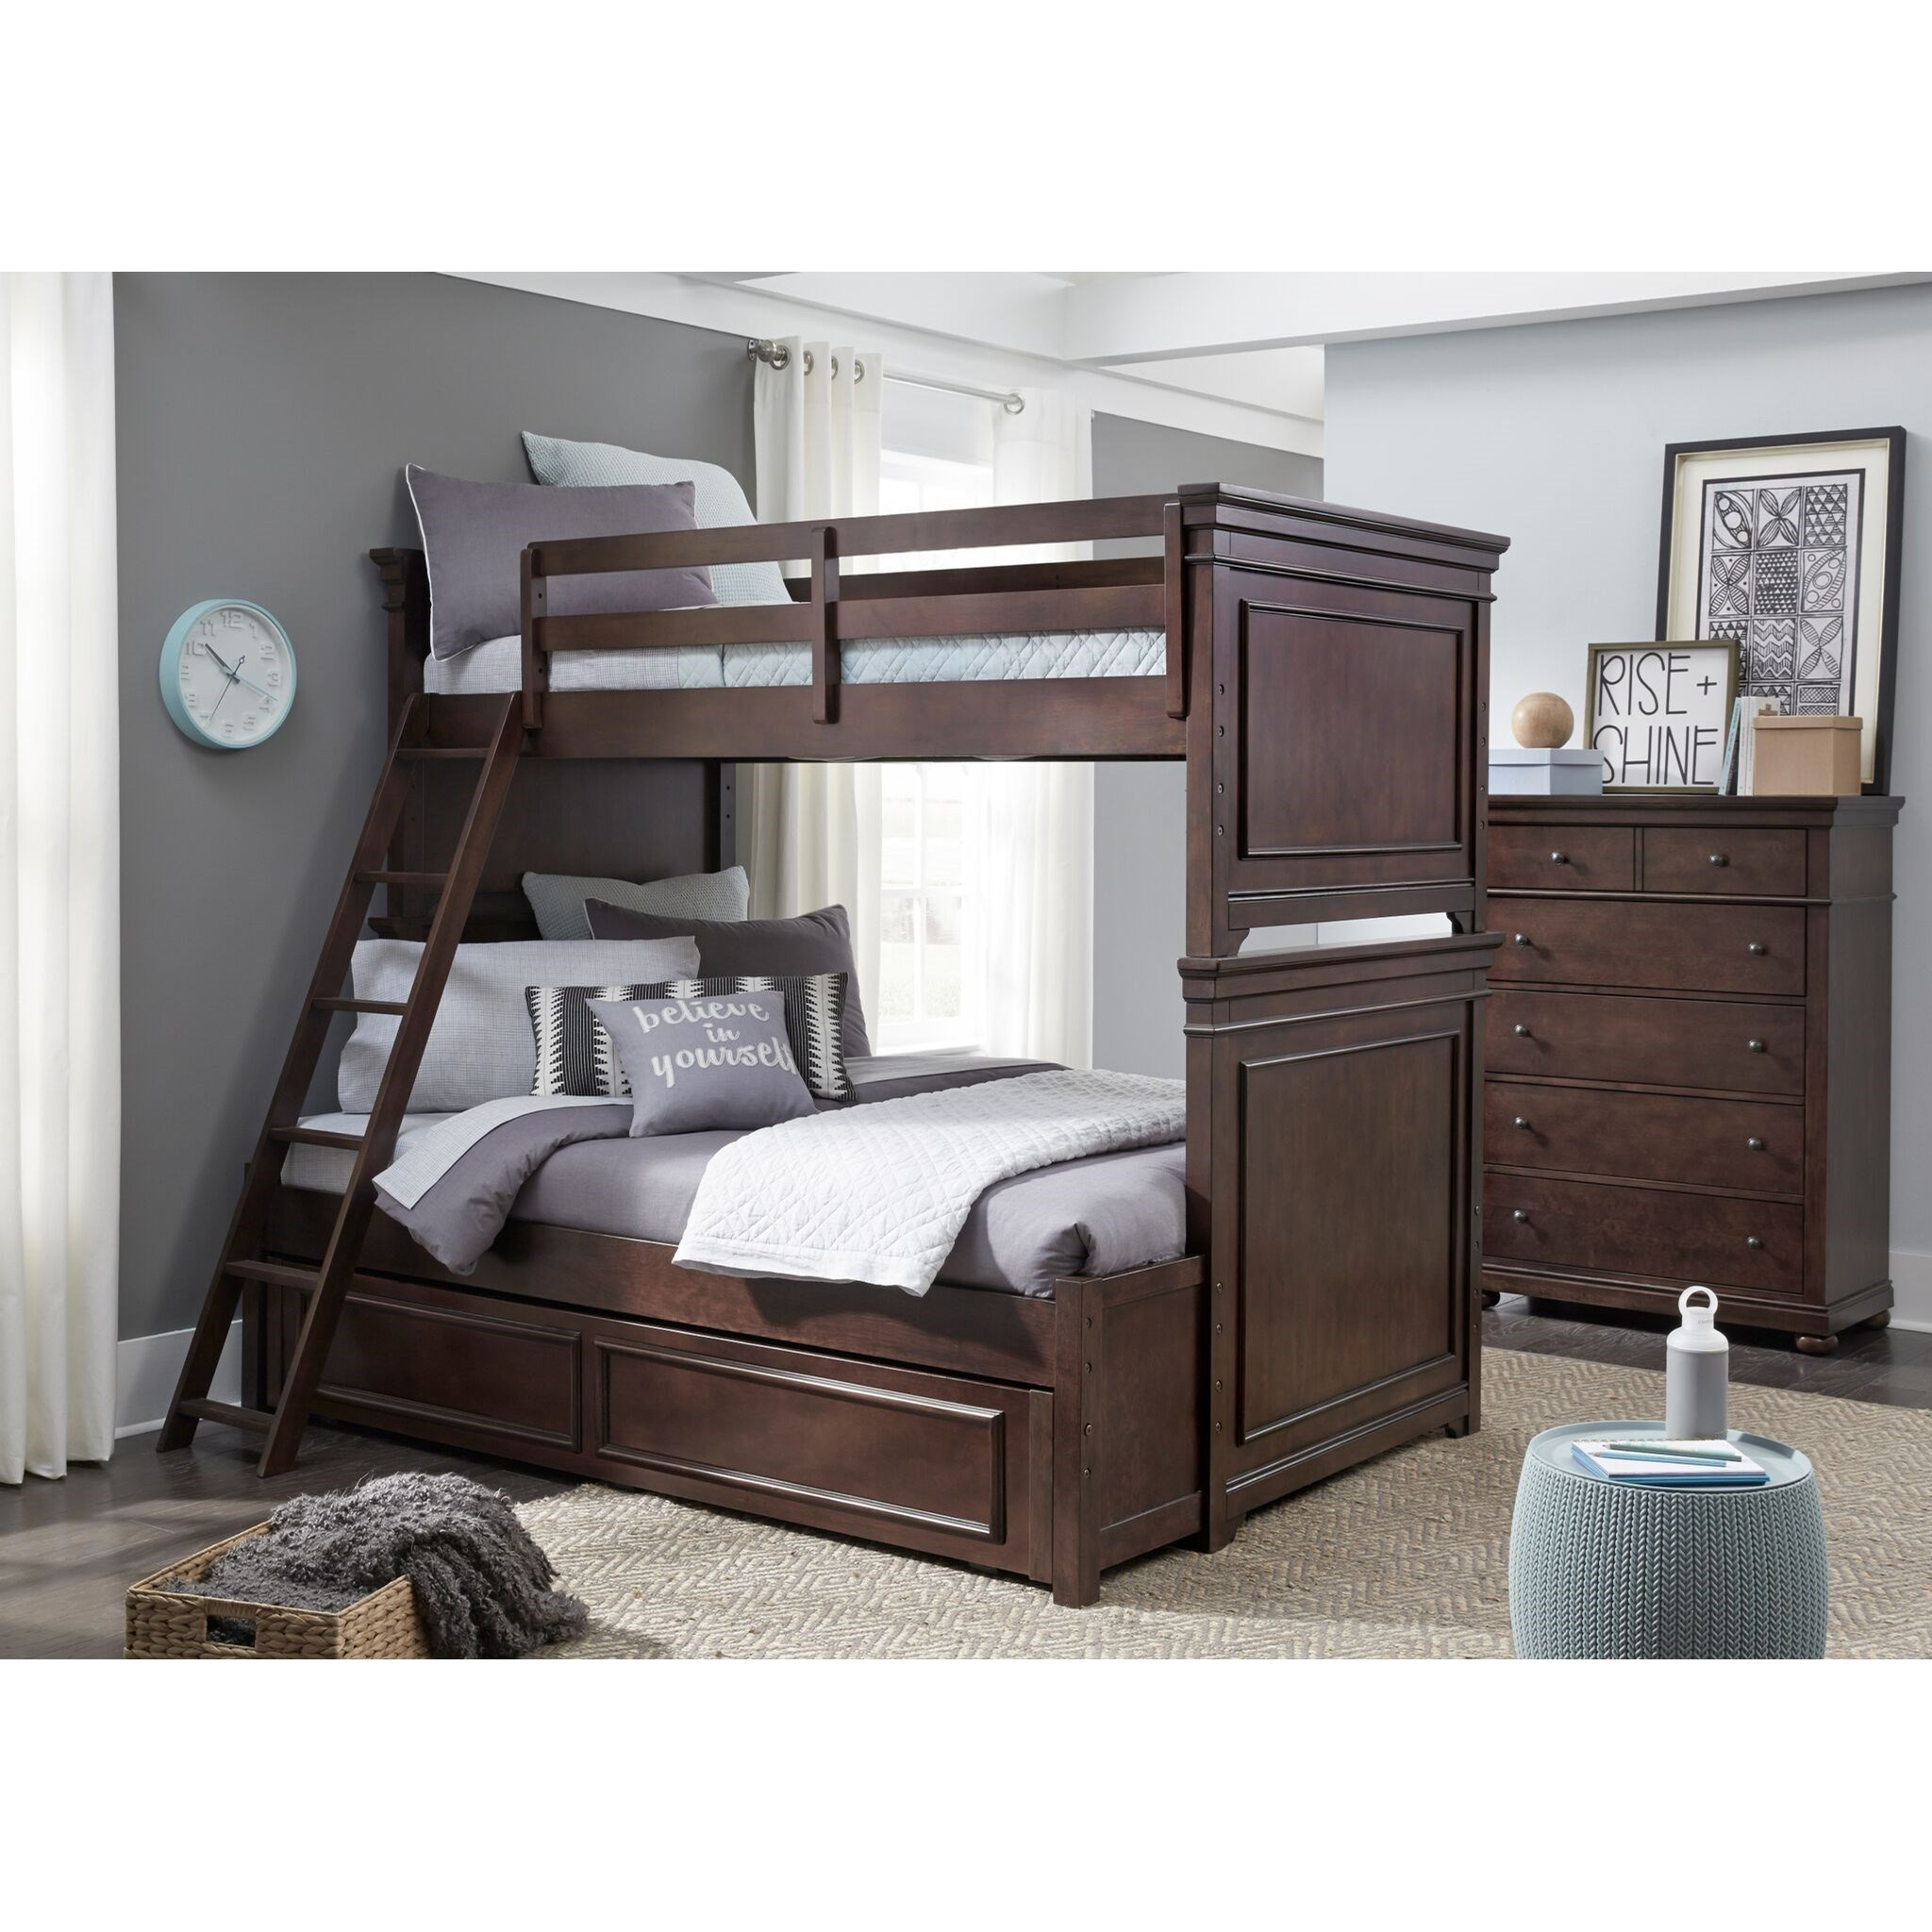 Canterbury Twin-over-Full Bunk Bedroom Group by Legacy Classic Kids at Crowley Furniture & Mattress